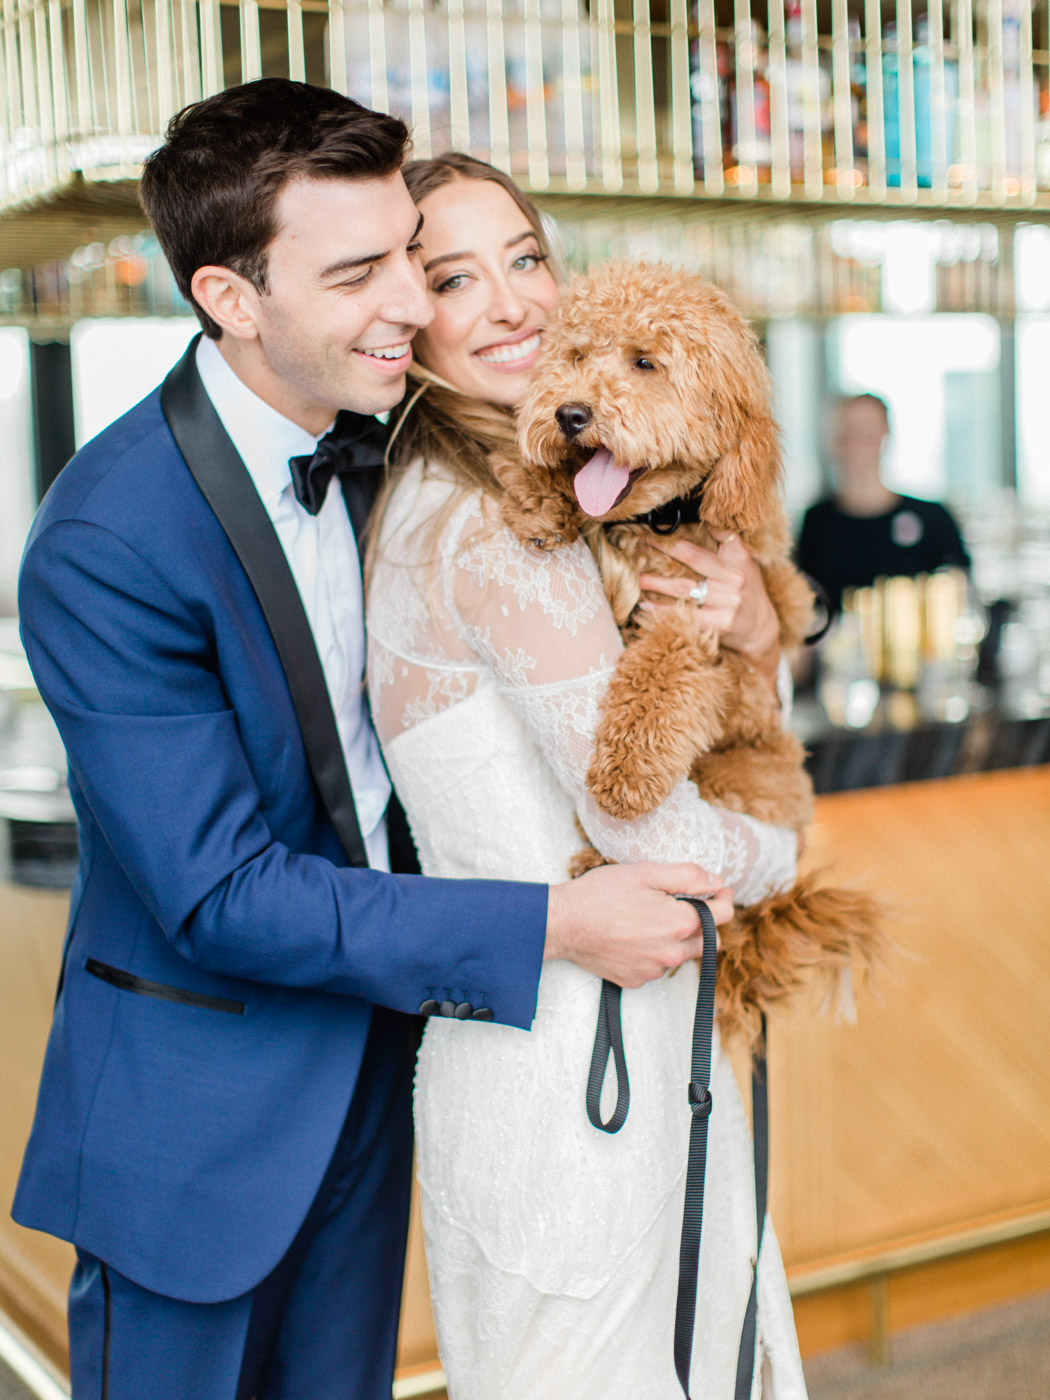 -	Bride, groom , and puppy at vogue styled wedding in downtown Toronto.  Captured by Toronto wedding photographer, Corynn Fowler Photography.